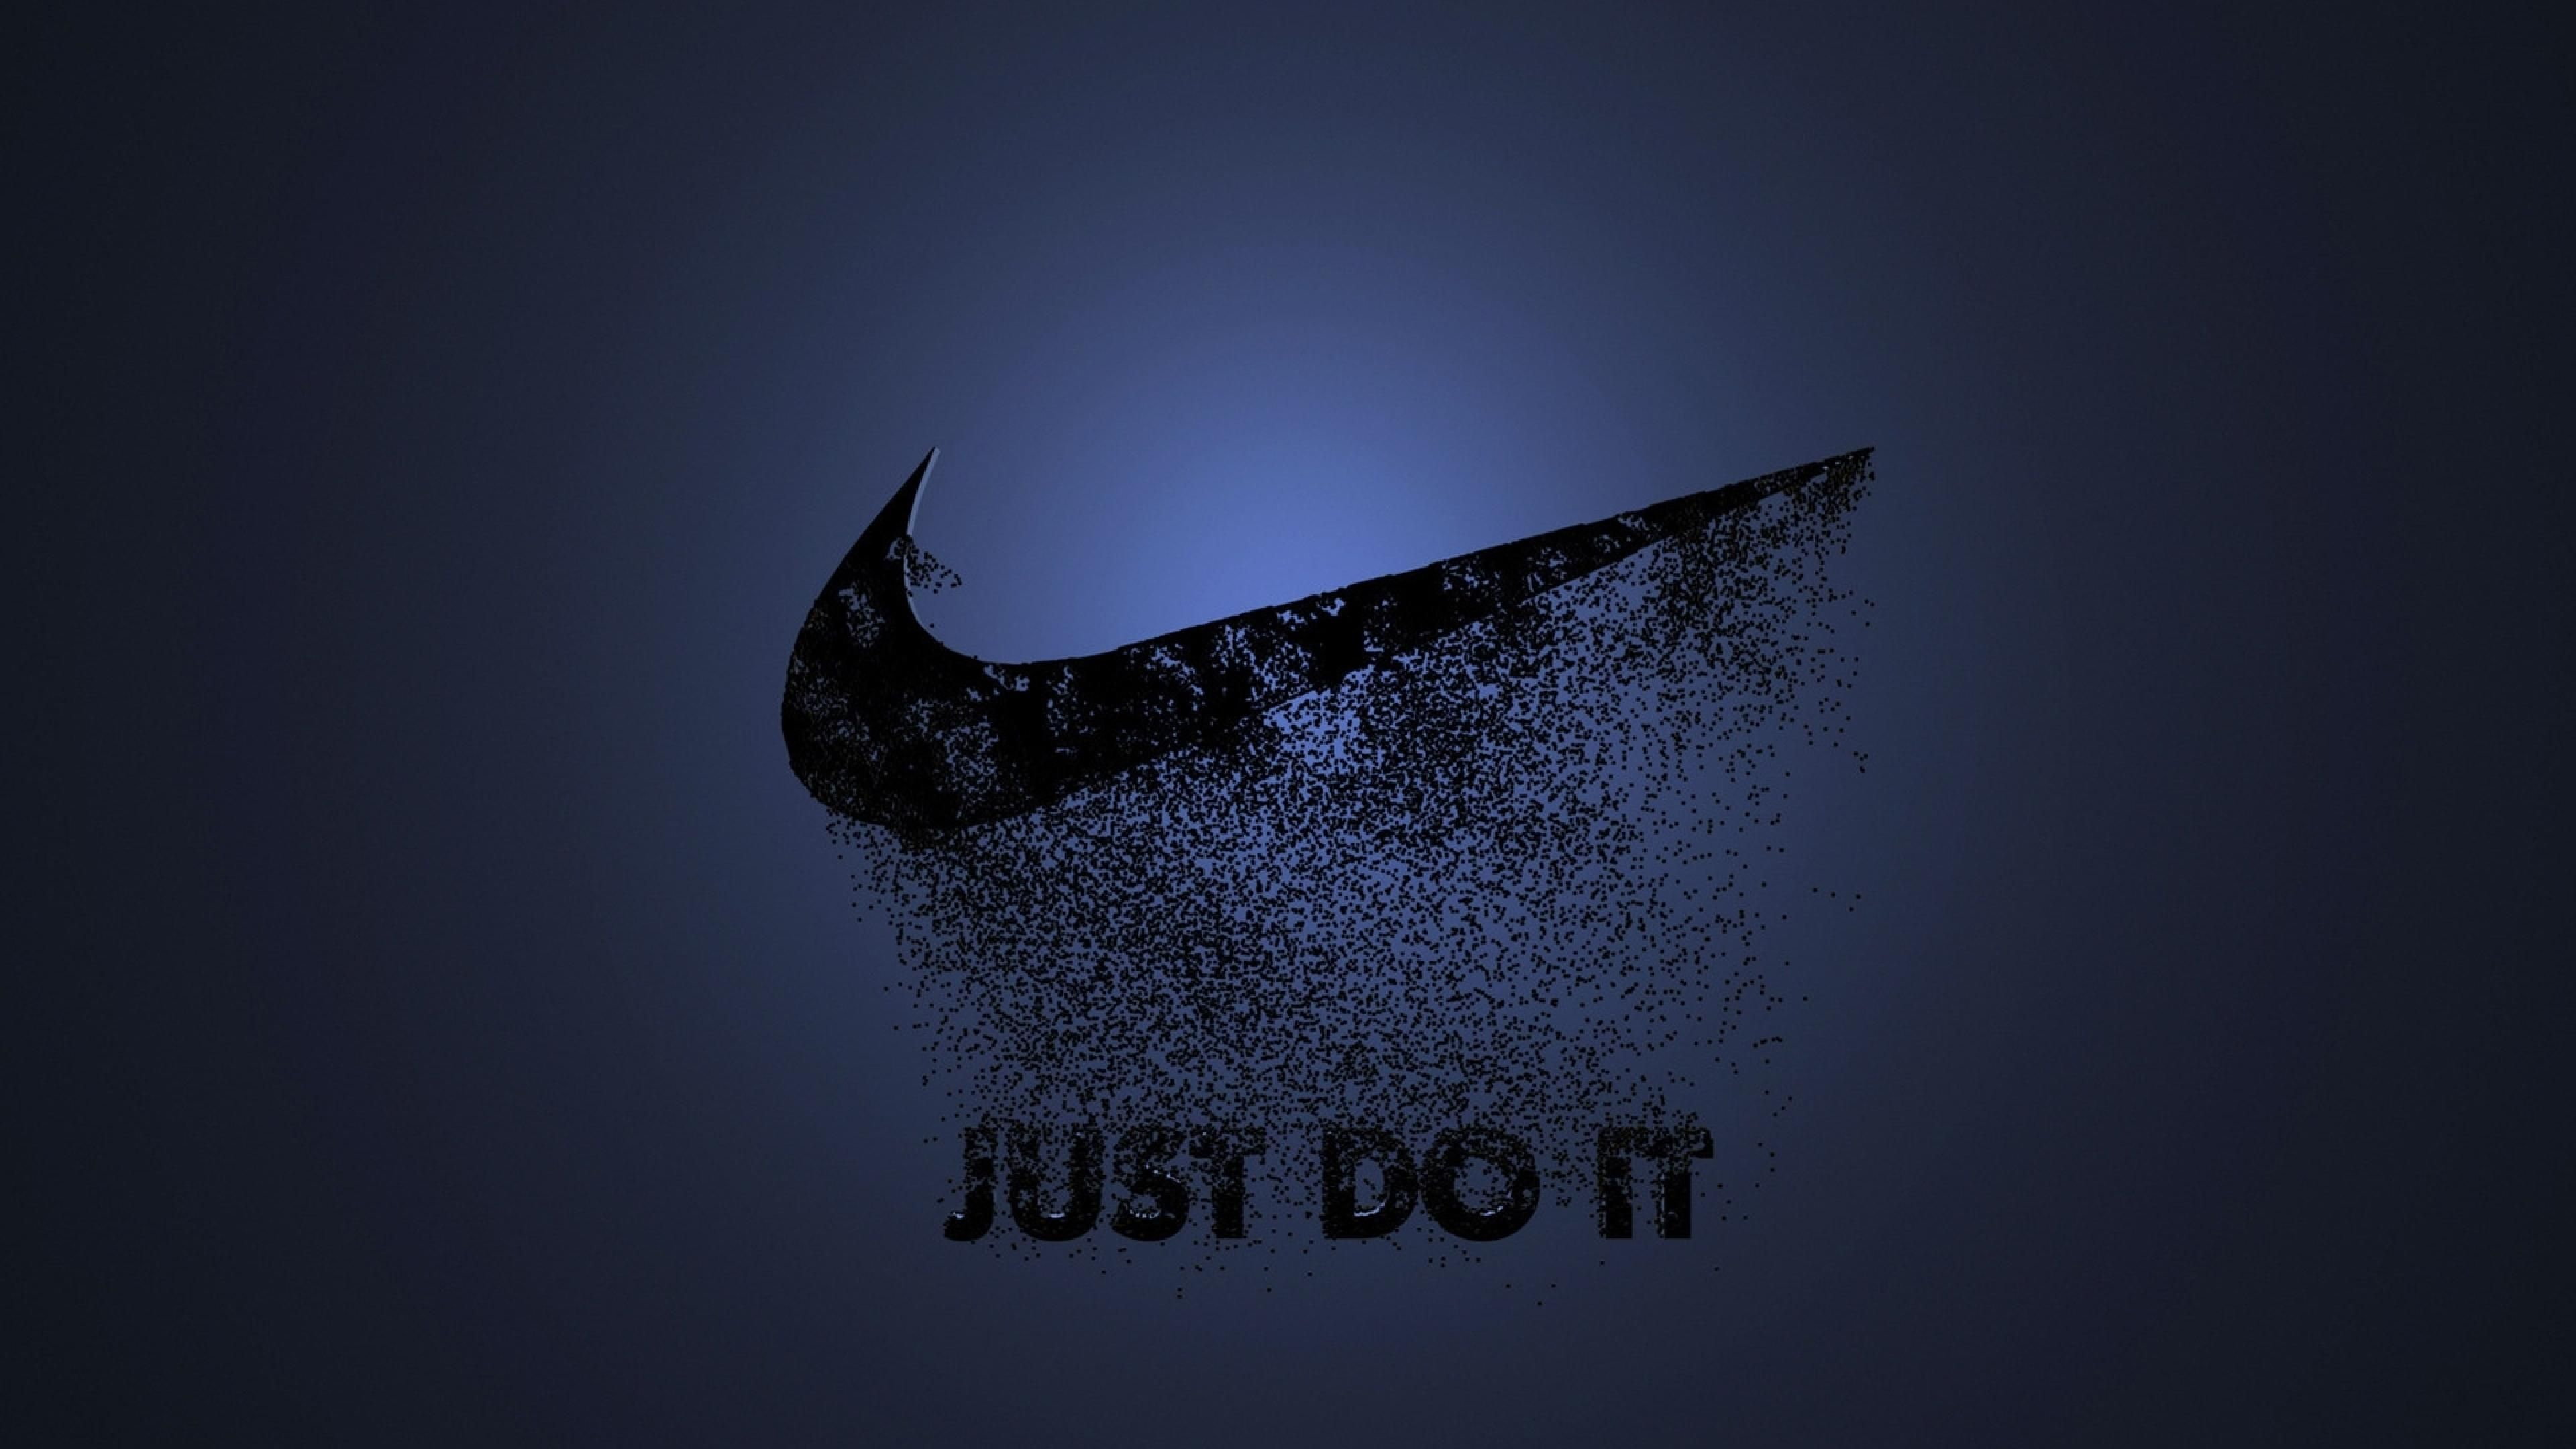 Nike Just Do It Wallpaper High Quality Resolution #38k